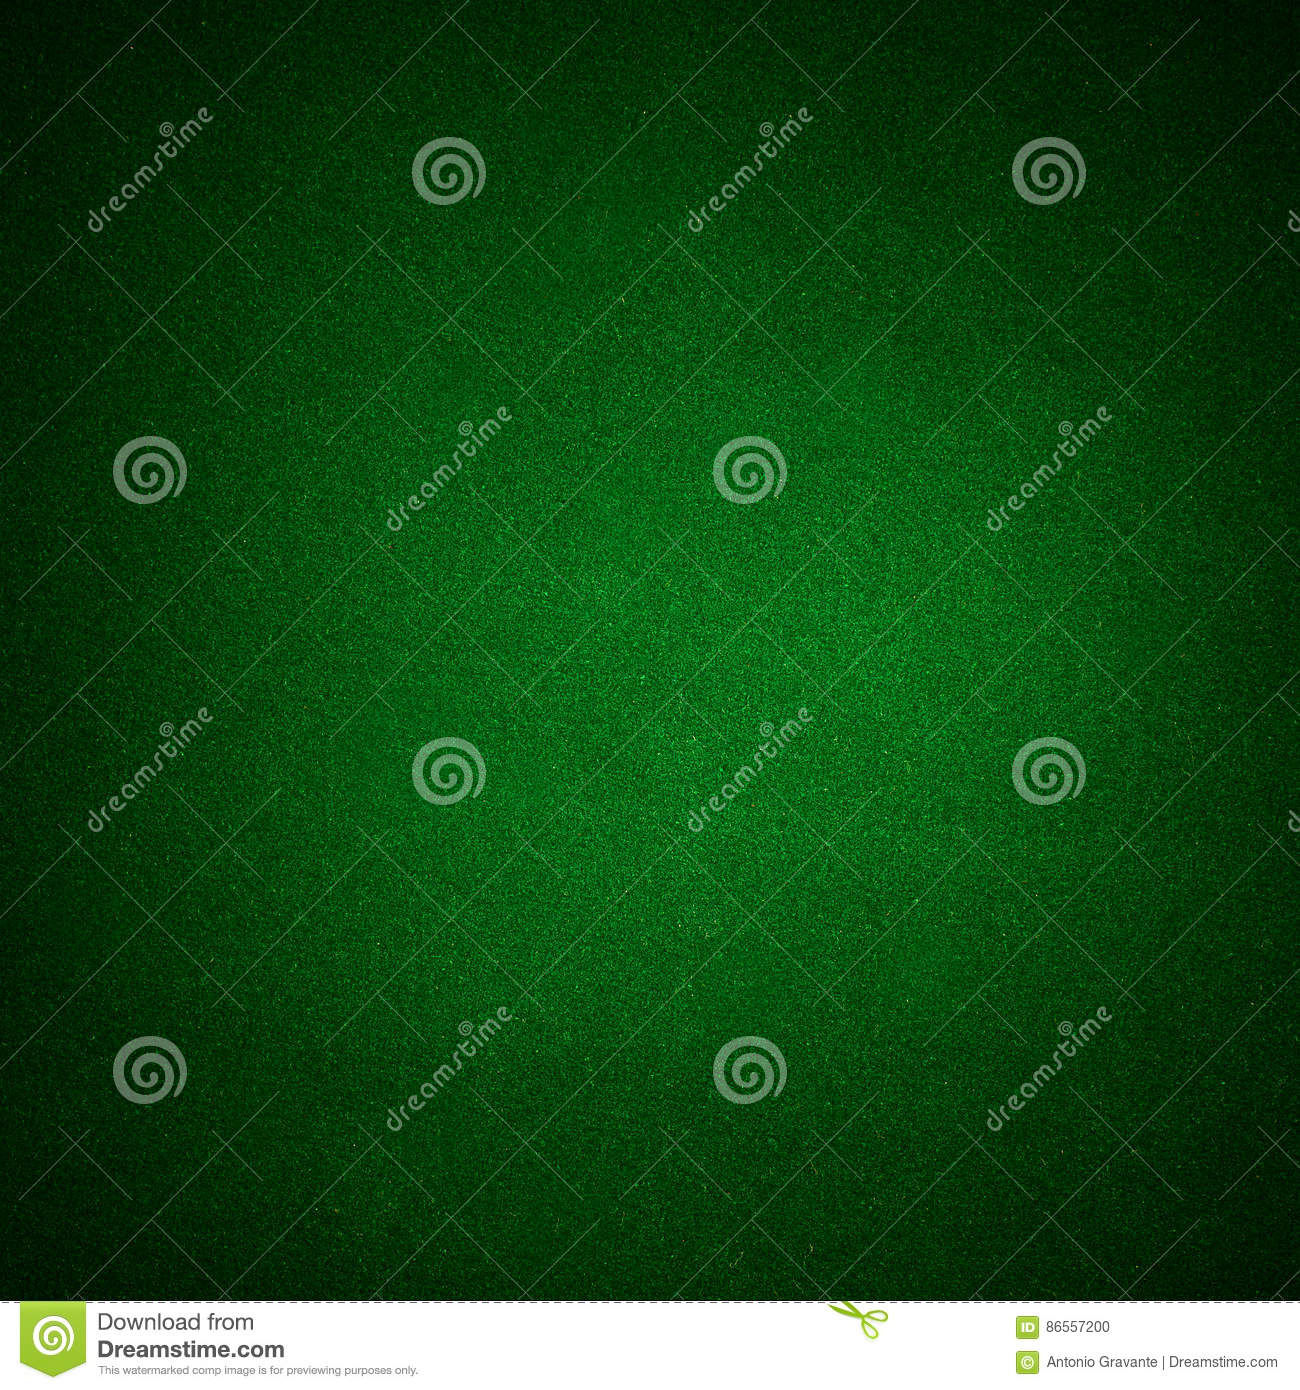 Poker table background hd - Background Felt Green Poker Table